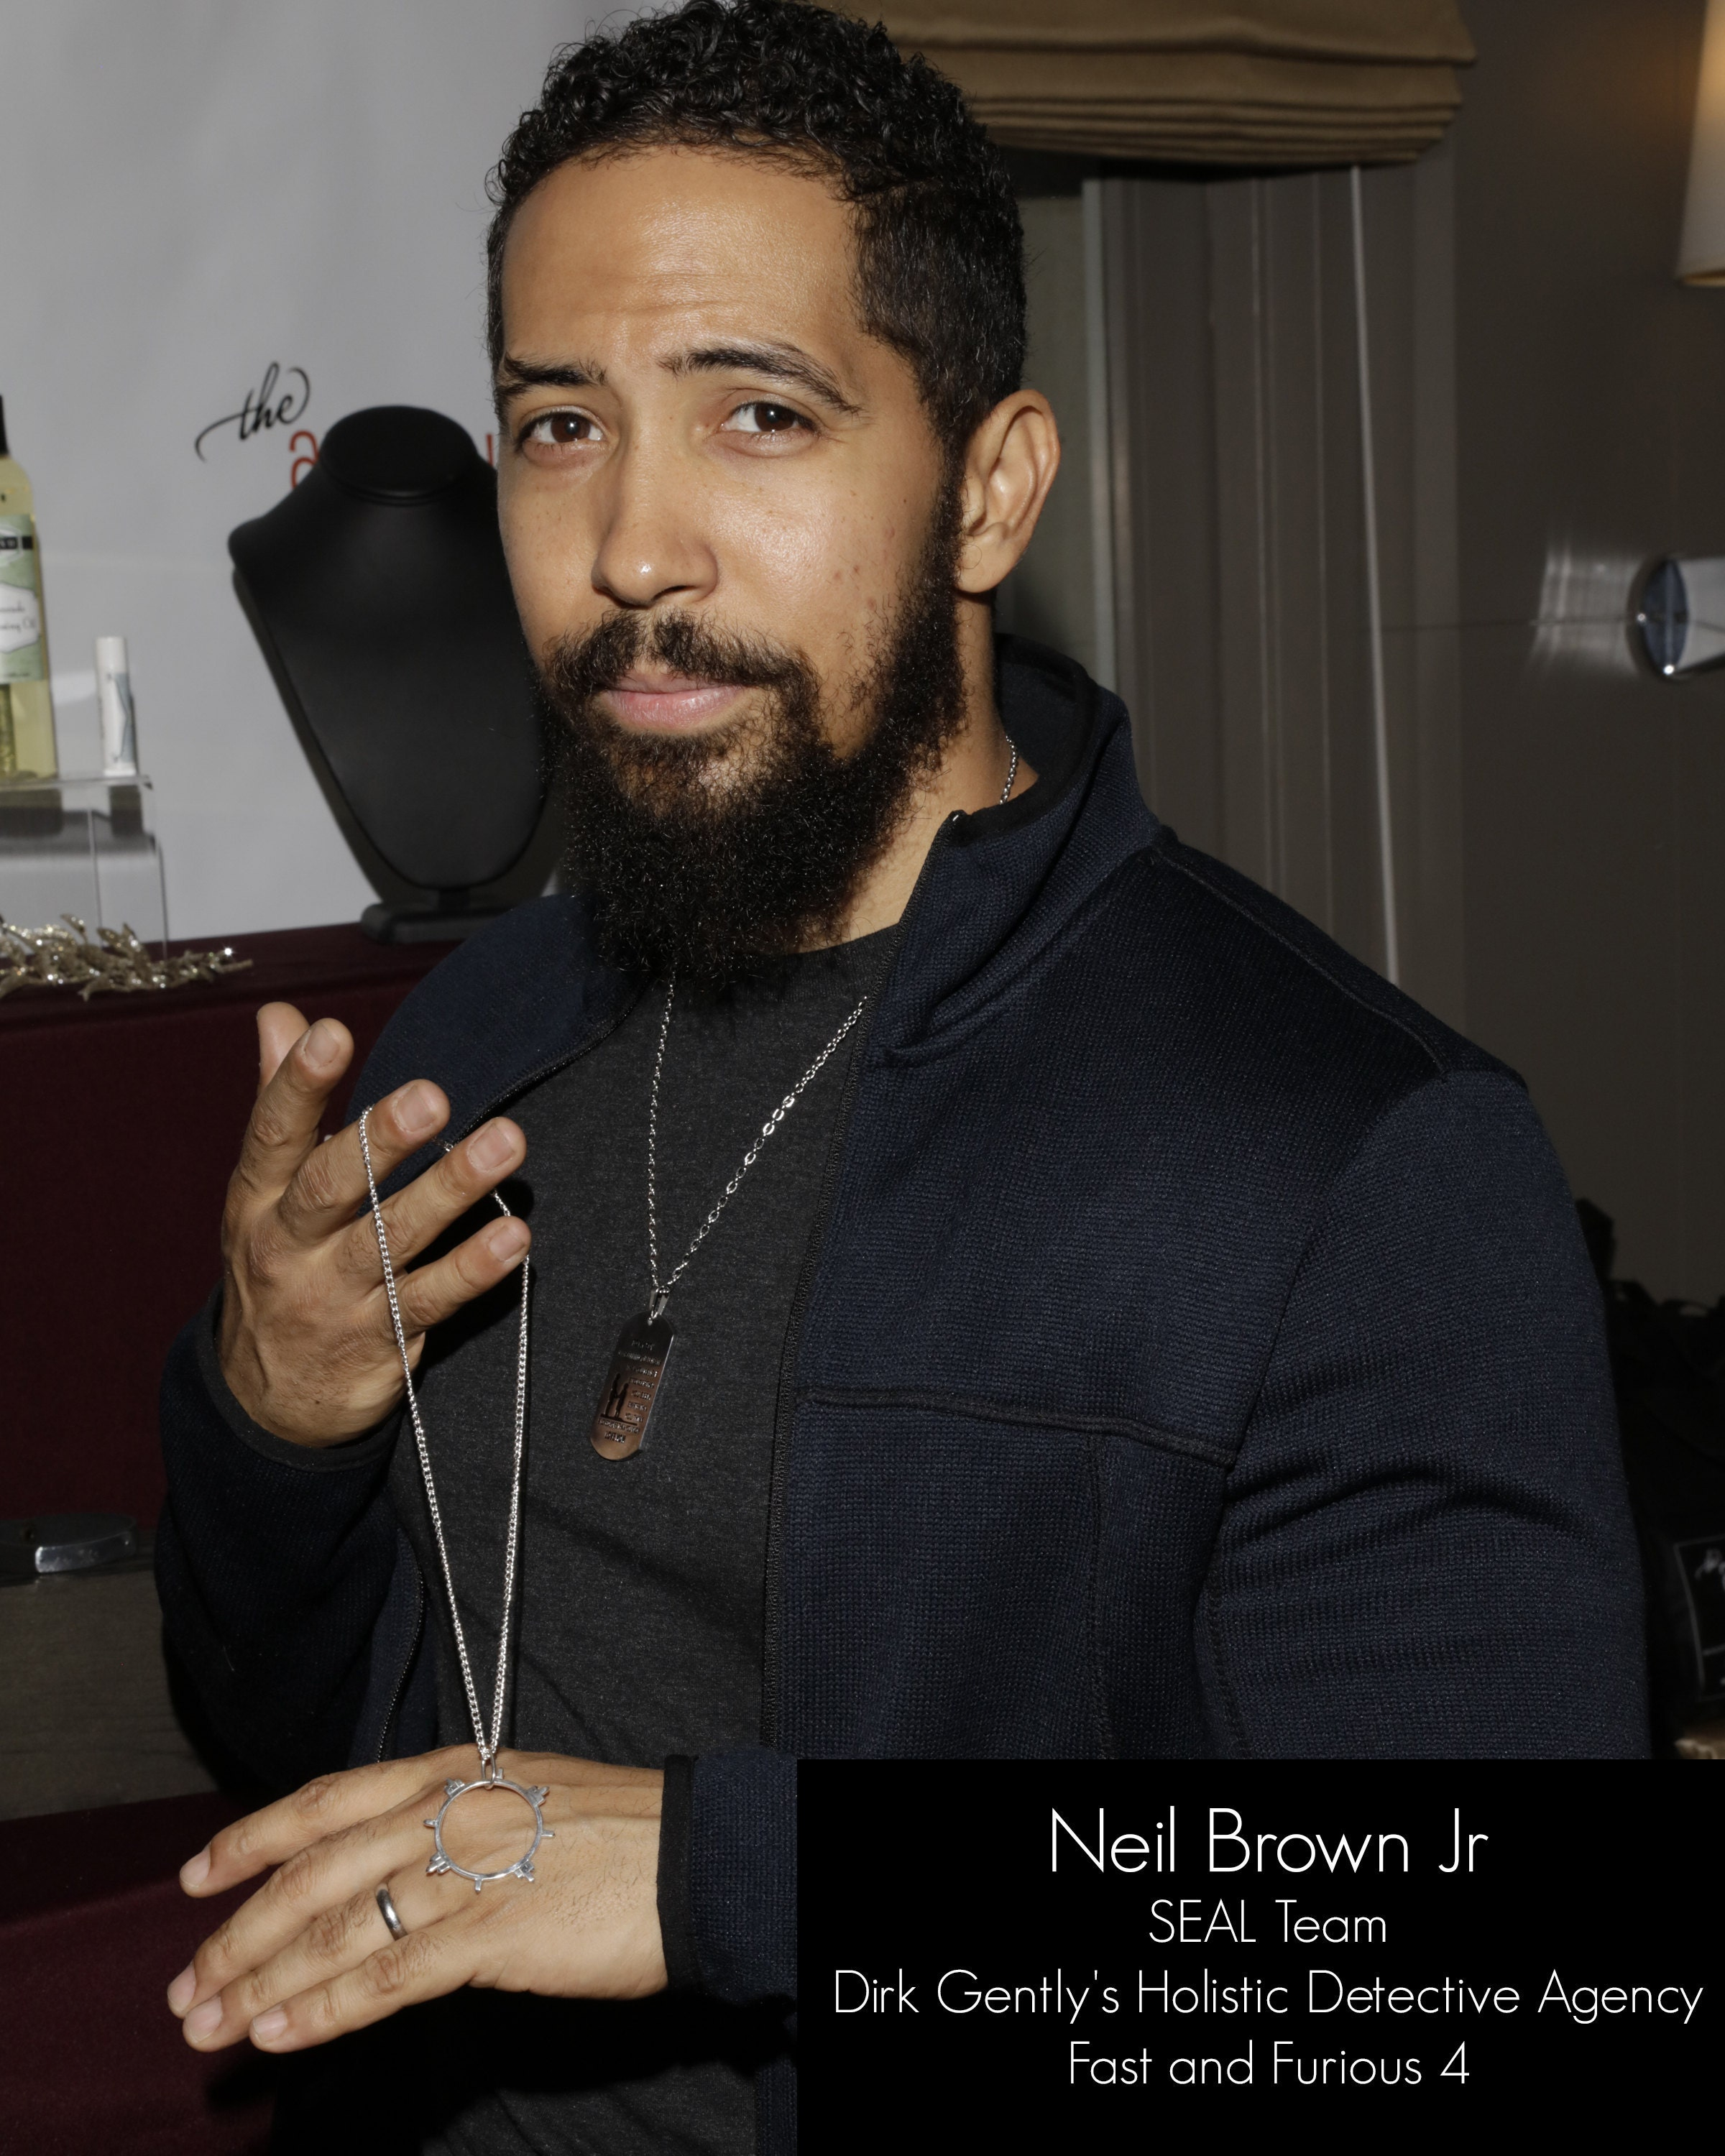 Neil Brown Jr and Inchoo Bijoux